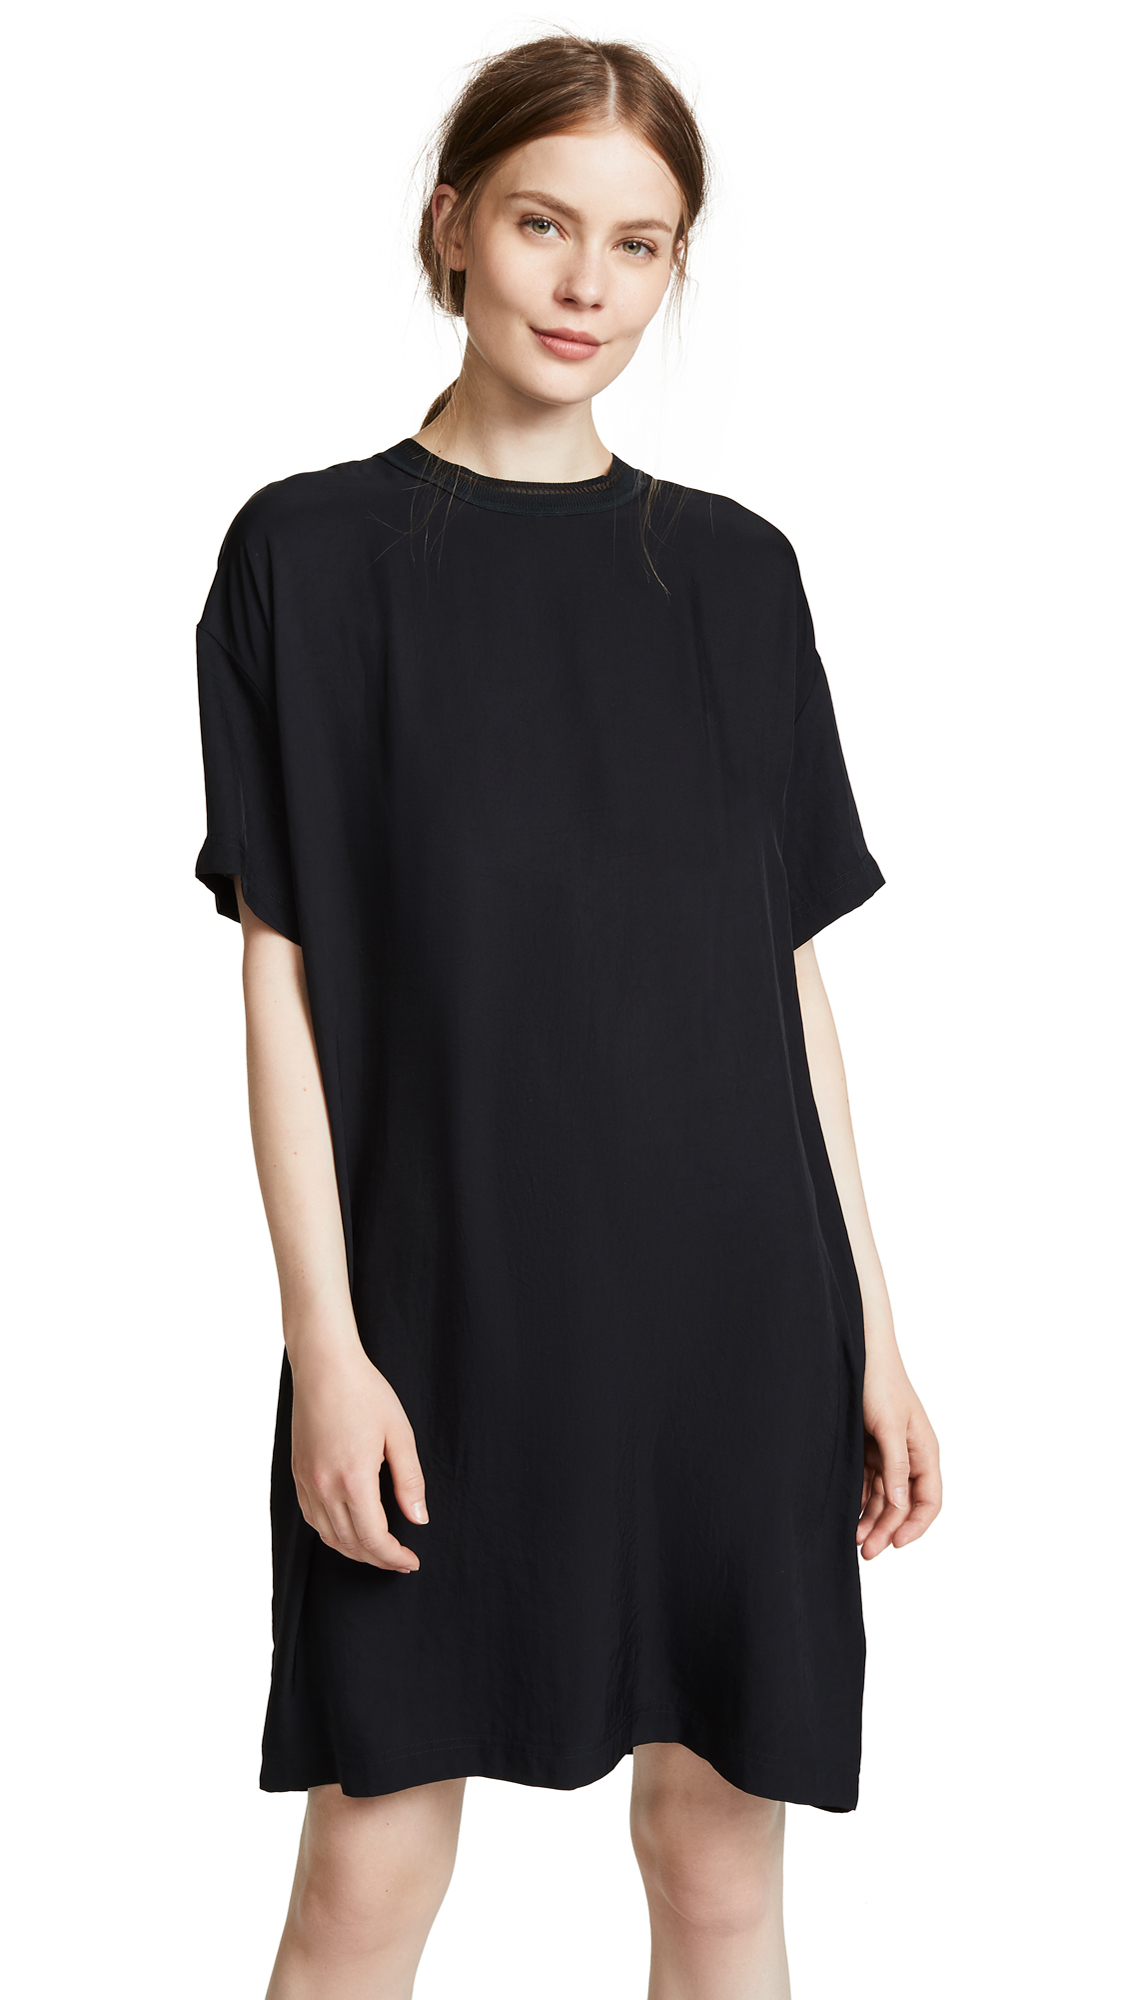 Vince Ribbed Trim T-Shirt Dress In Black